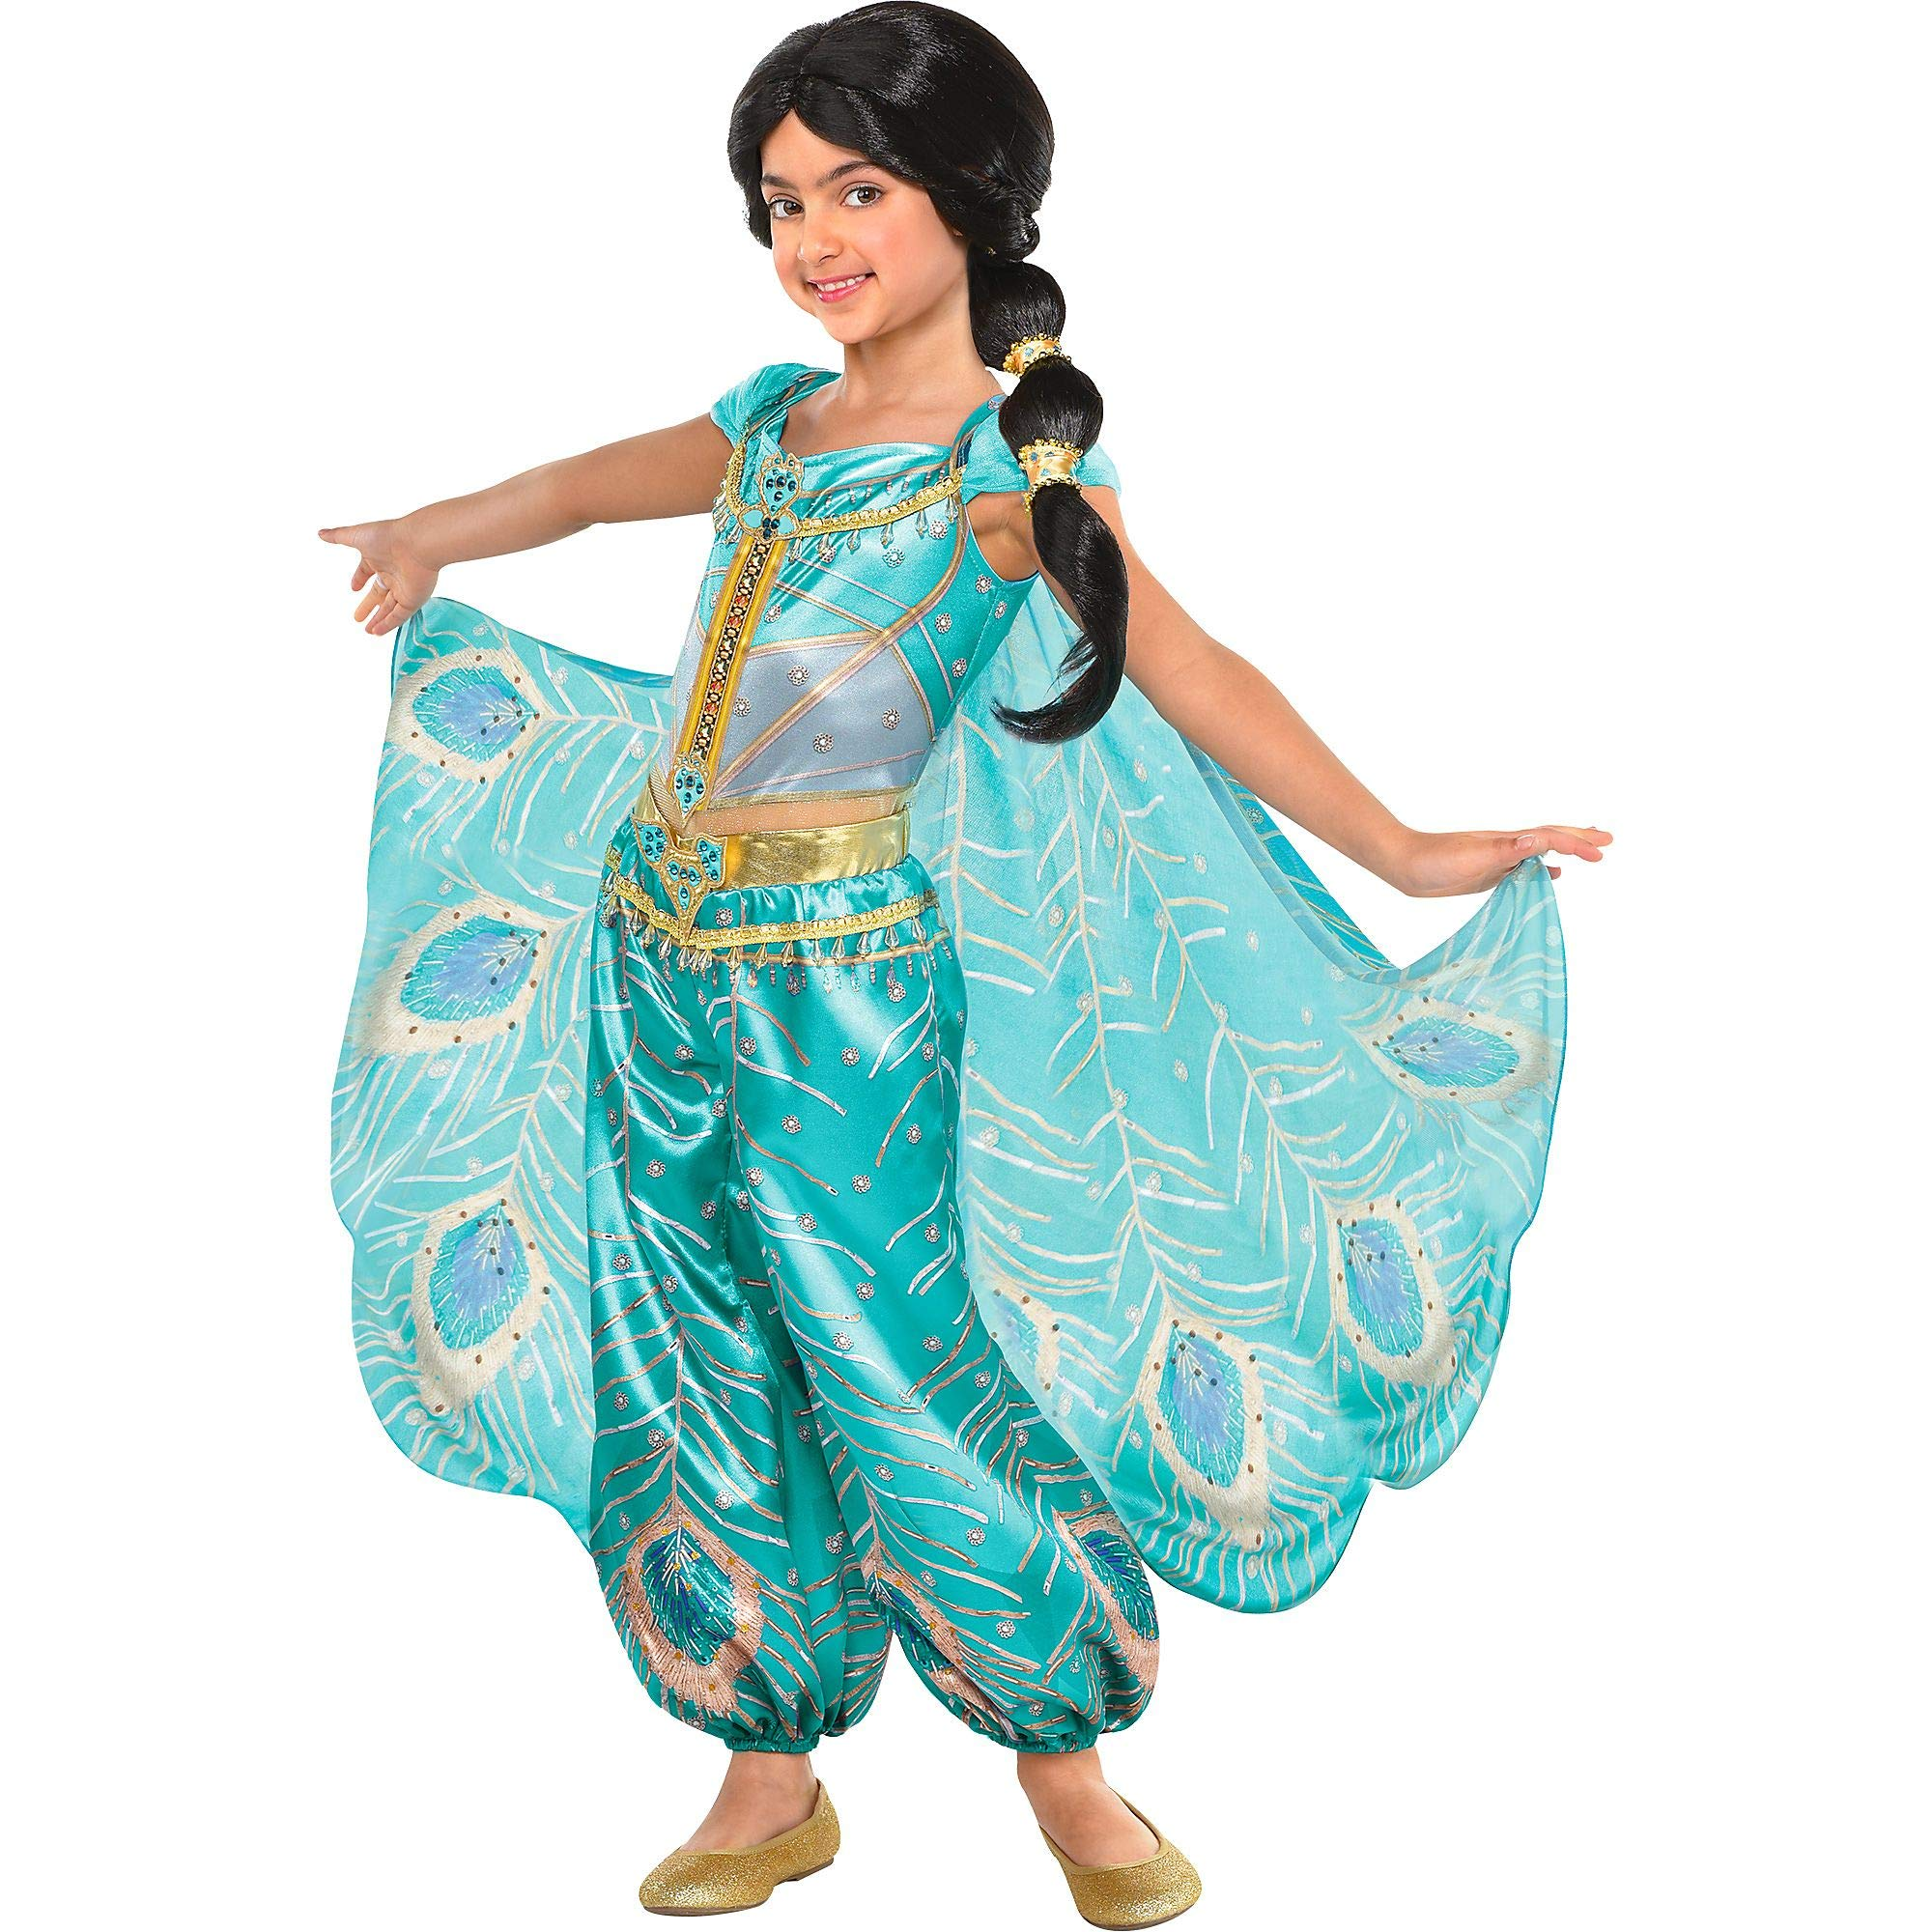 Party City Aladdin Jasmine Whole New World Costume for Children, Size Small, Features a Peacock Jumpsuit with a Cape